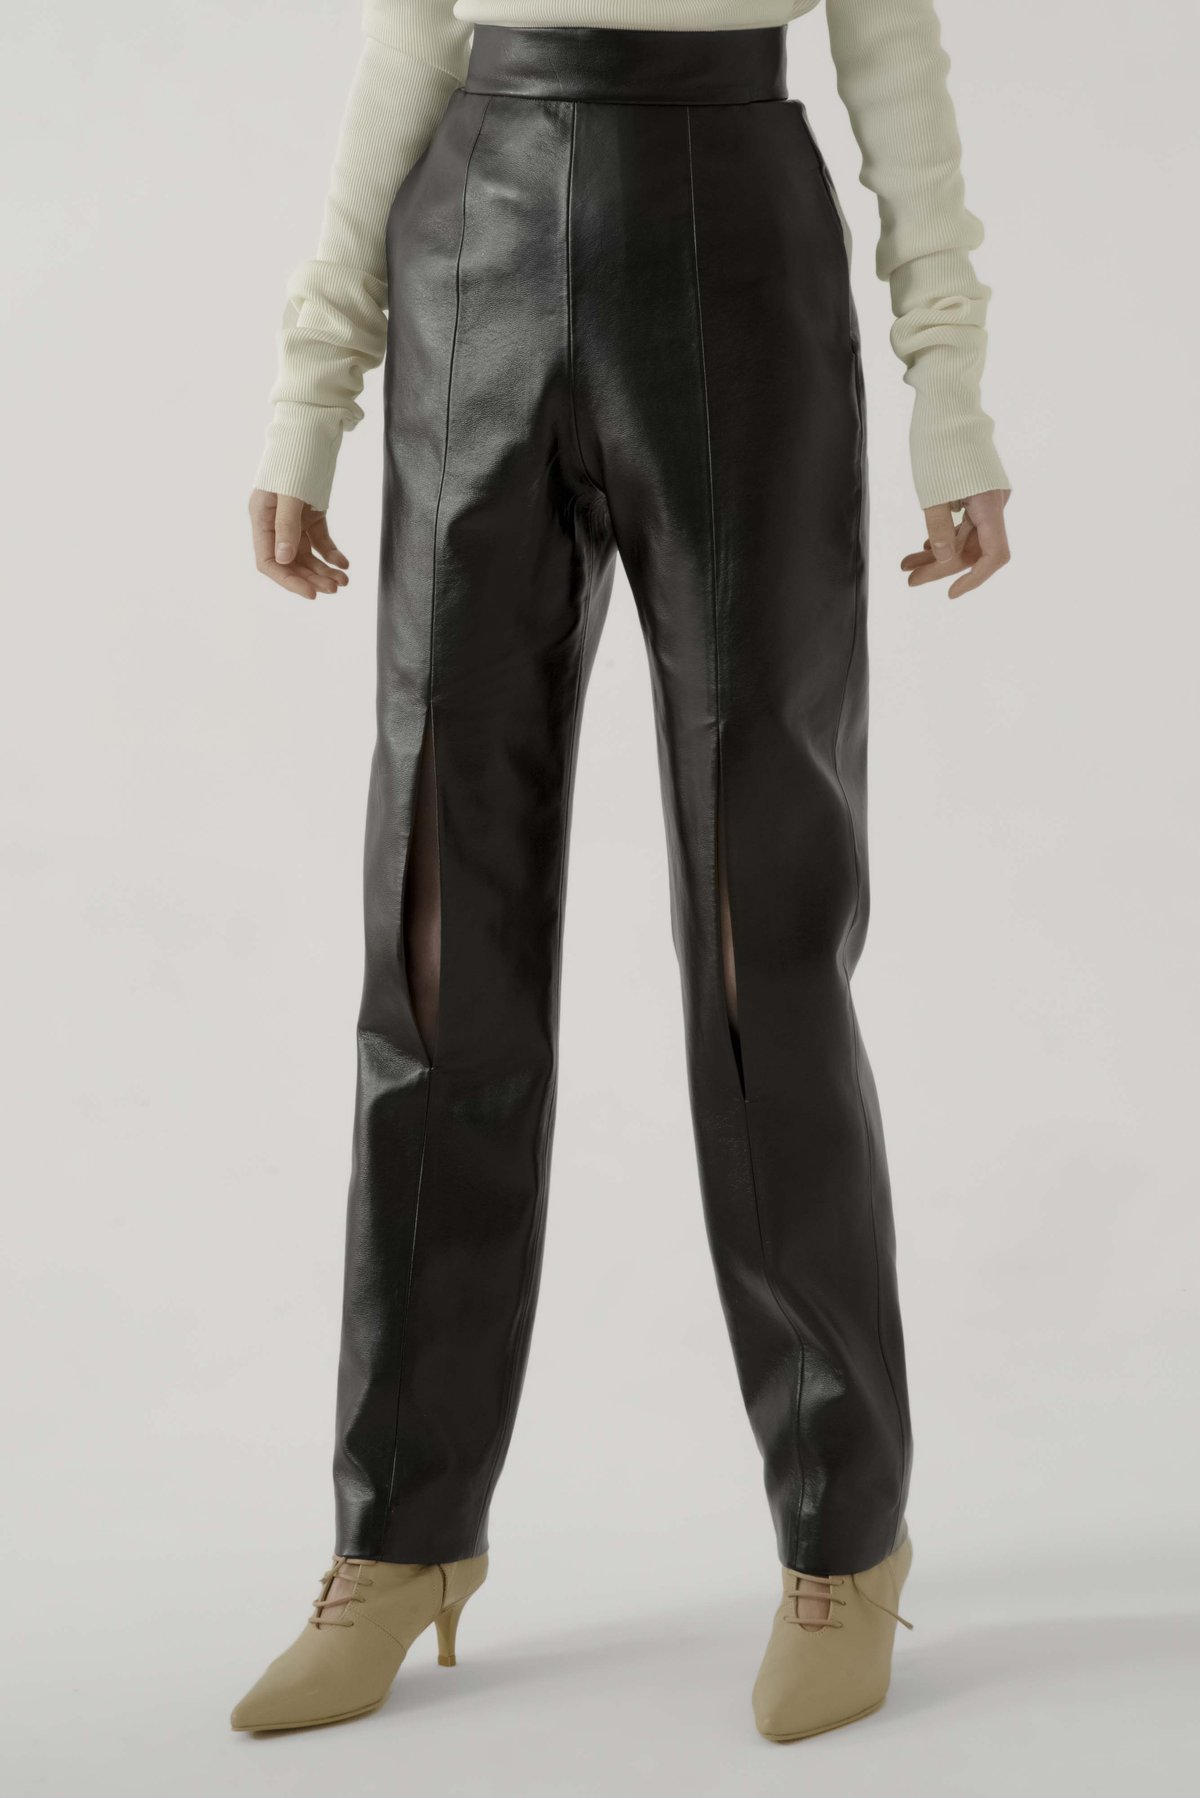 Leather Pants by Materiel Tbilisi, available on materieltbilisi.com for $364 Kendall Jenner Pants Exact Product